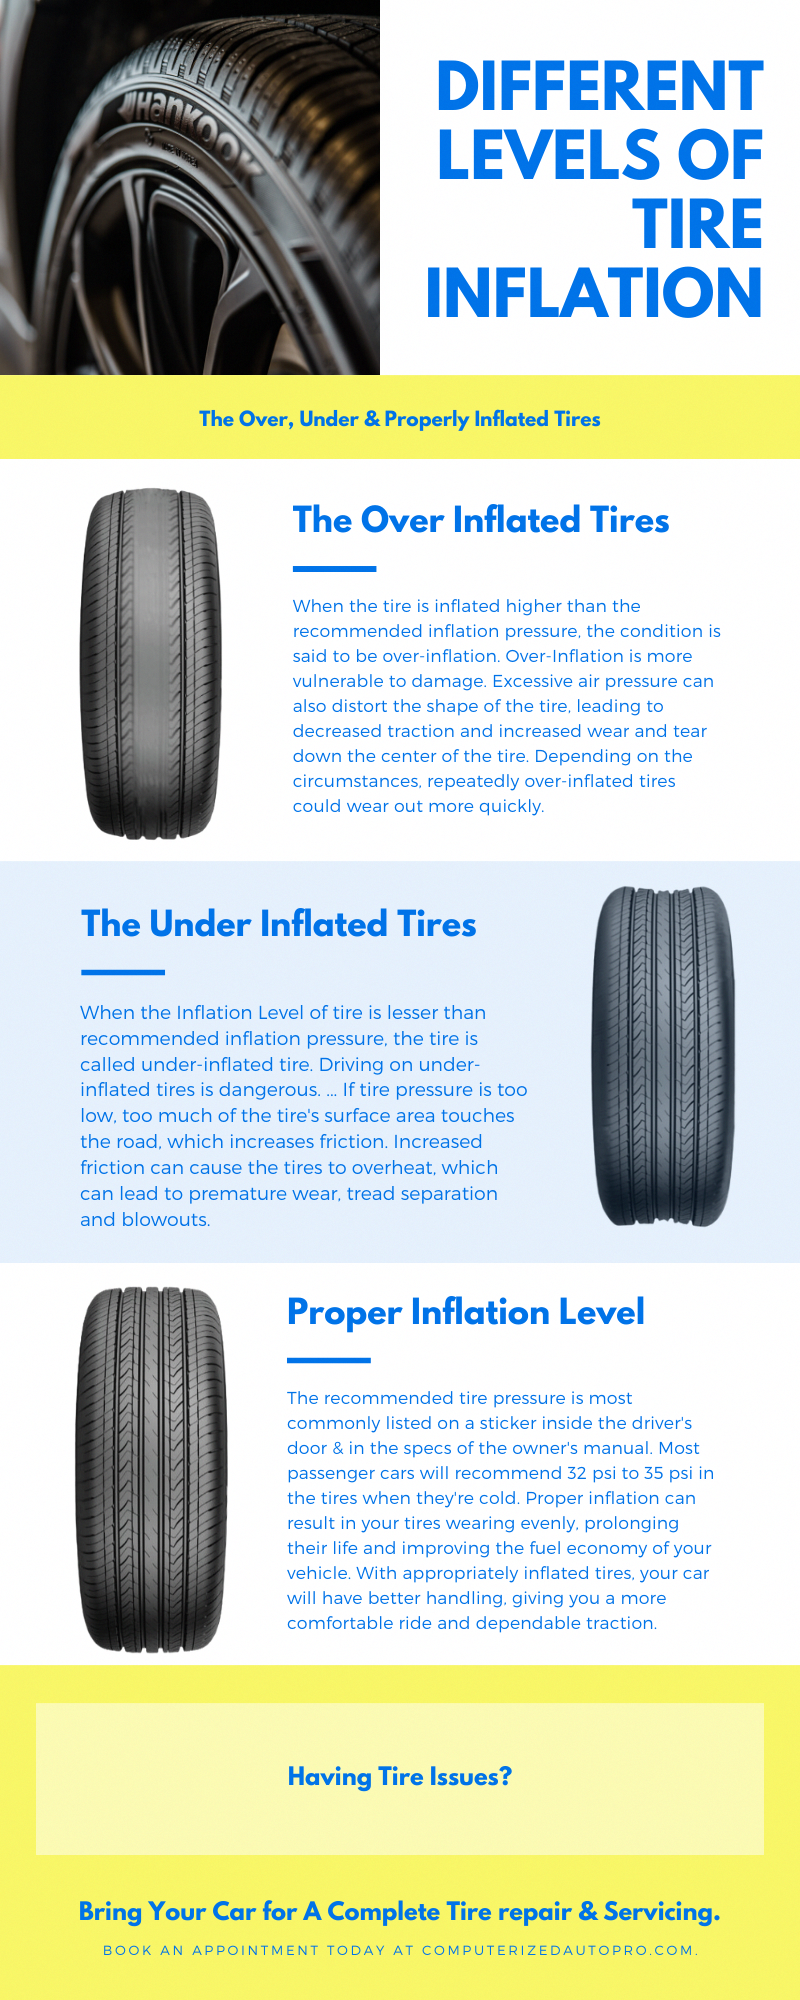 Improper Tire Inflation May Lead To Fast Or Irregular Wear Which Can Cause Substantial Interior Tire Damages As Well As Can Result Fuel Efficient Repair Tire